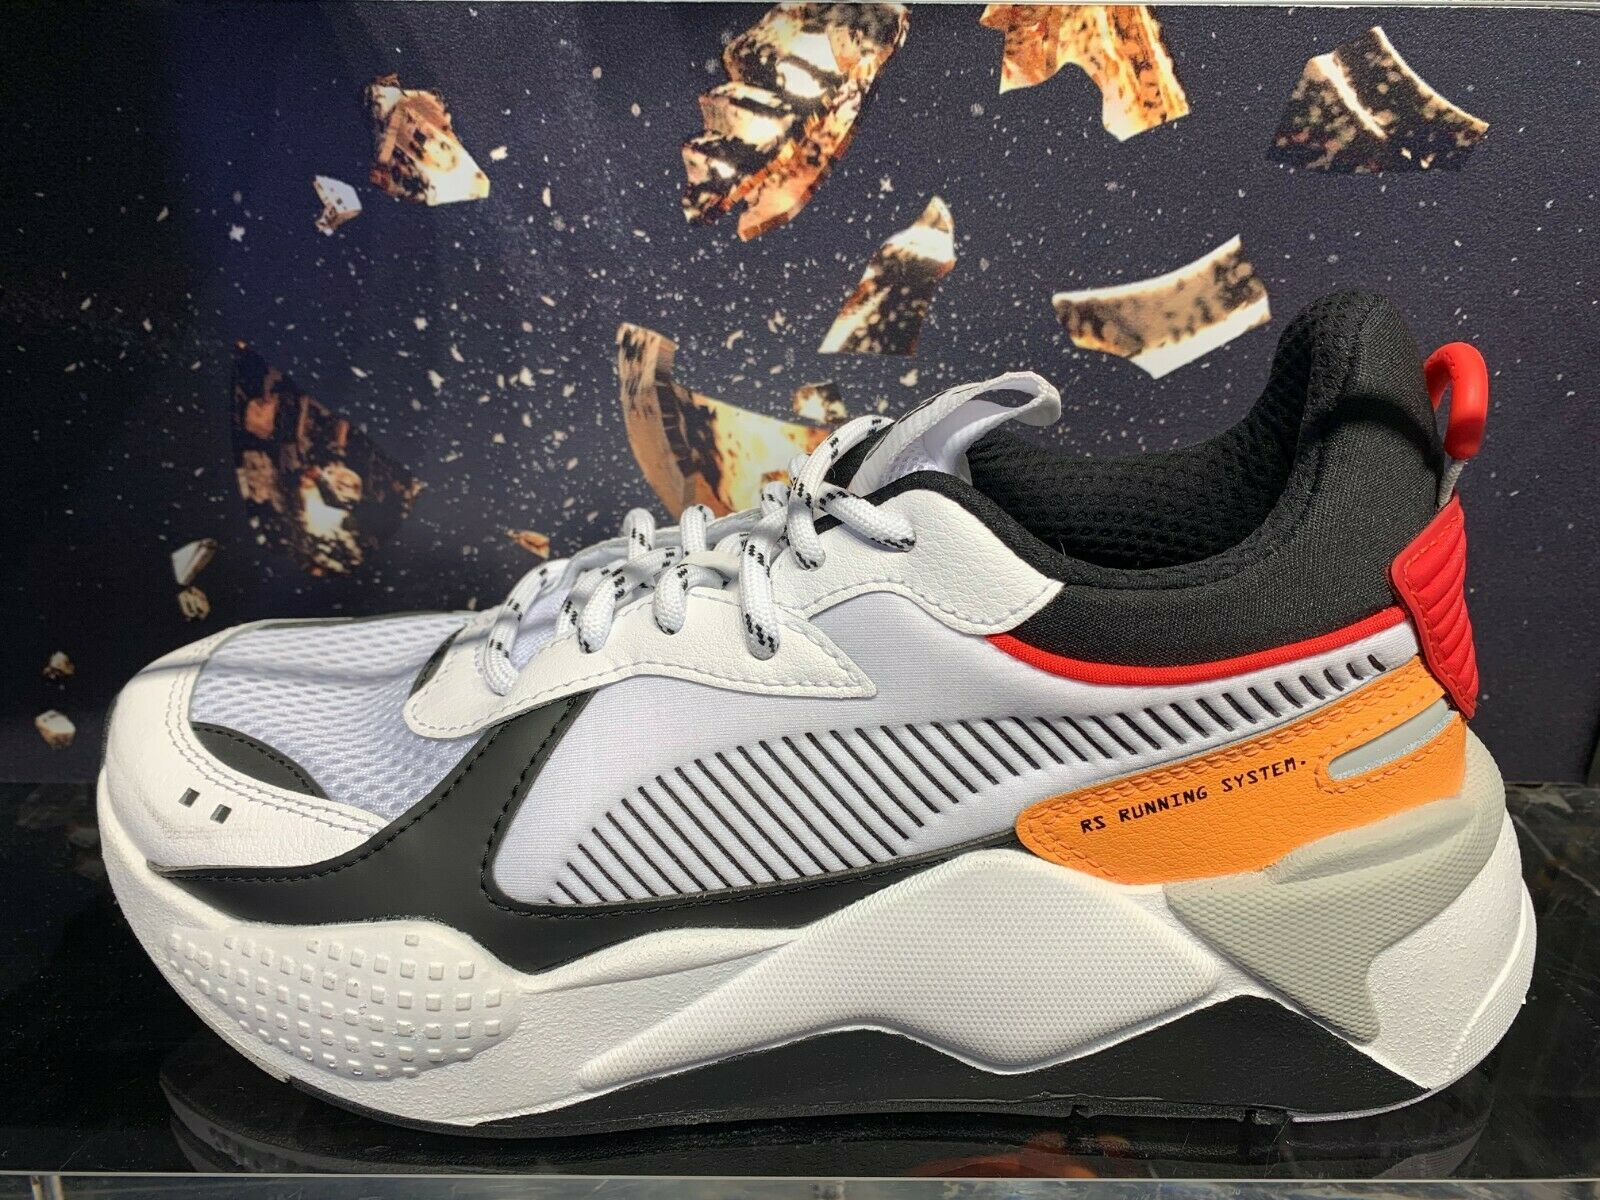 Puma RS-X Toys Reinvention Running System White Black Red Sz 4Y-13 369579-02